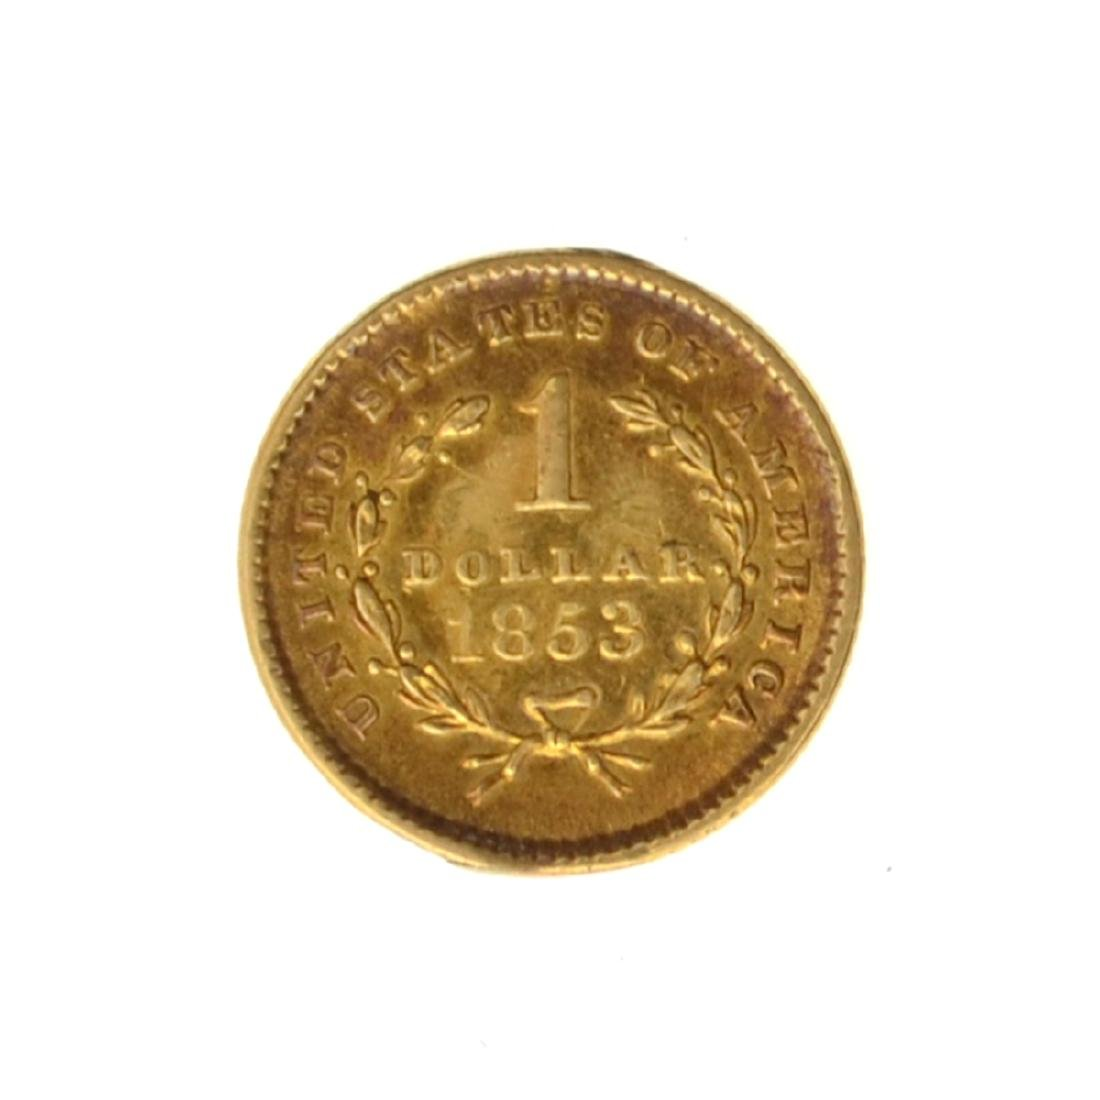 *1853 $1 U.S. Liberty Head Gold Coin - Great Investment - 2